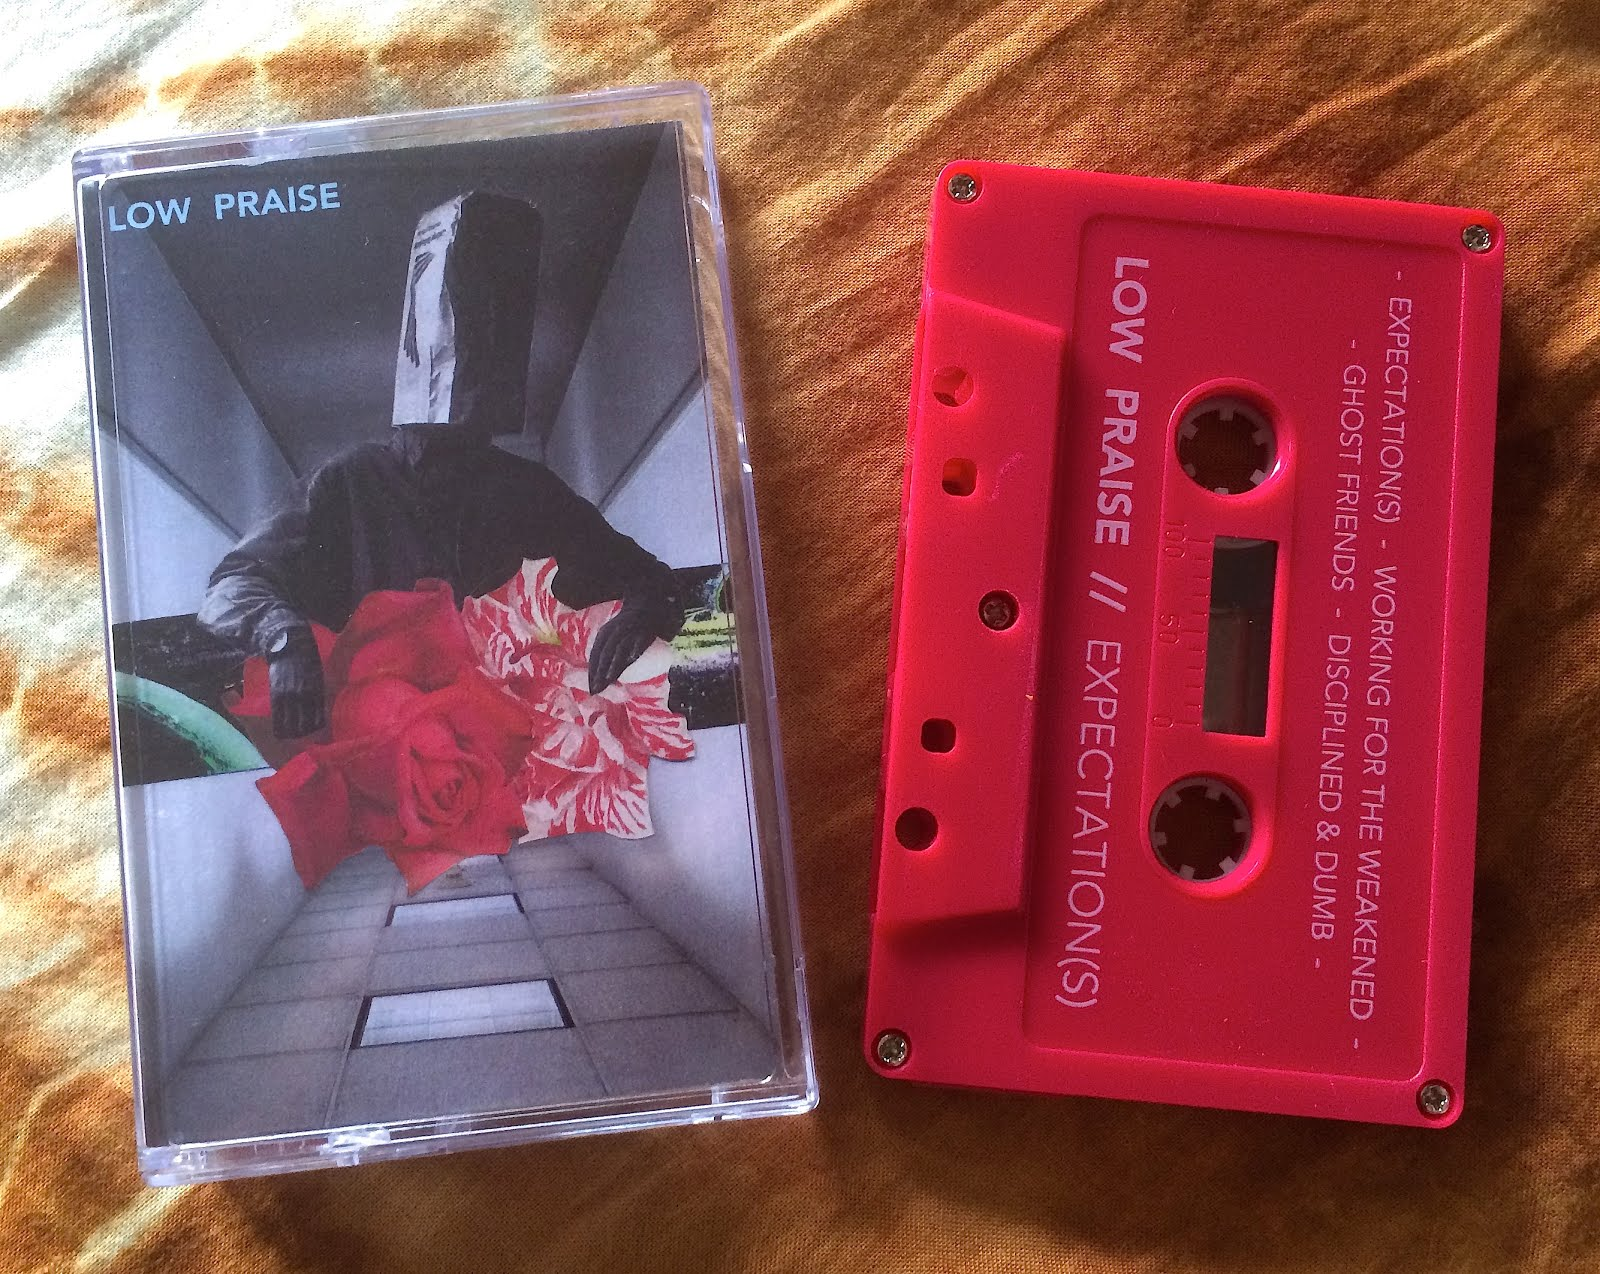 Cassette Gods Picture Or Circuit Board Of Aa 01 Aeron 0 Hifi Audio Oaklands Low Praise Re Hash Some 90s Post Rock Vibes By Blowing Off The Dust Stuck To Jawbox Mid Early Sonic Youth Records What Sets Them Apart From